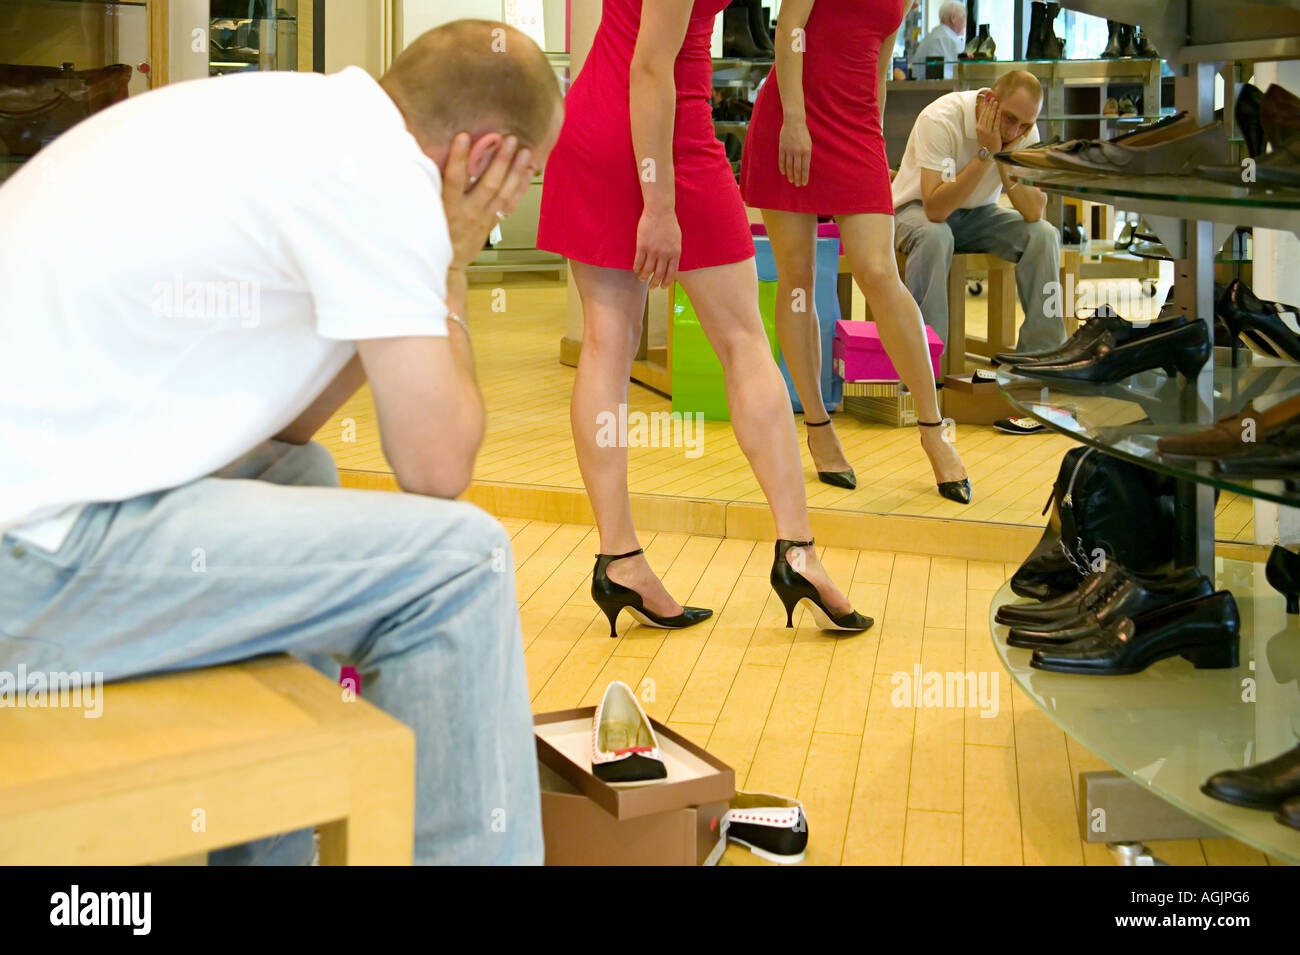 Fed up boyfriend watching woman try on shoes - Stock Image